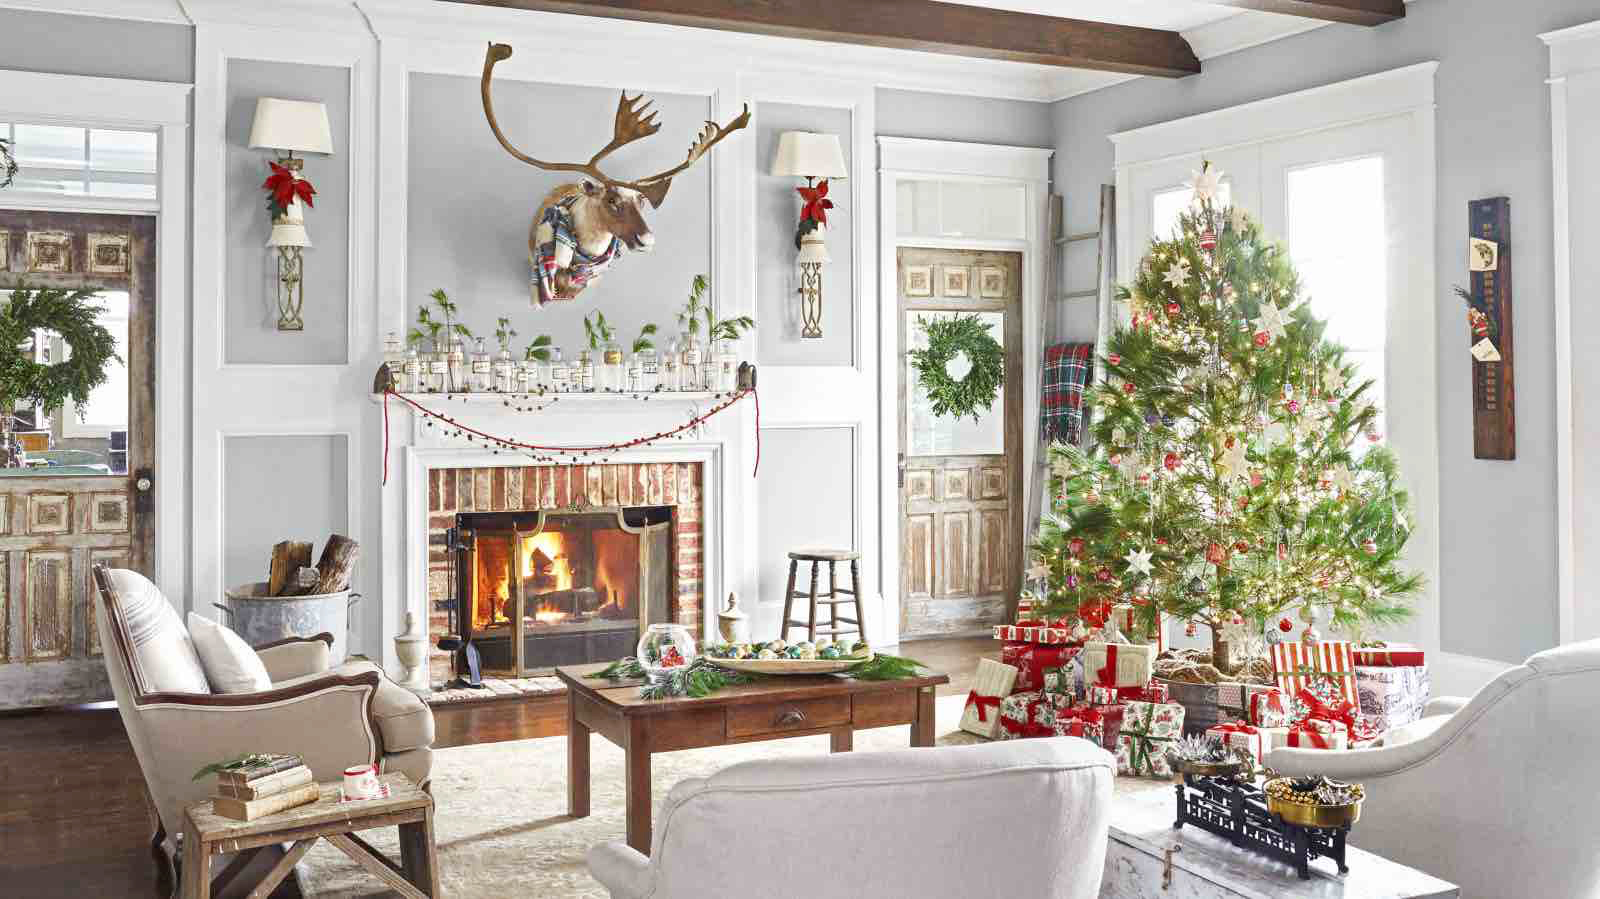 Christmas House Decoration Ideas | Let\'s Decorate Our House to ...